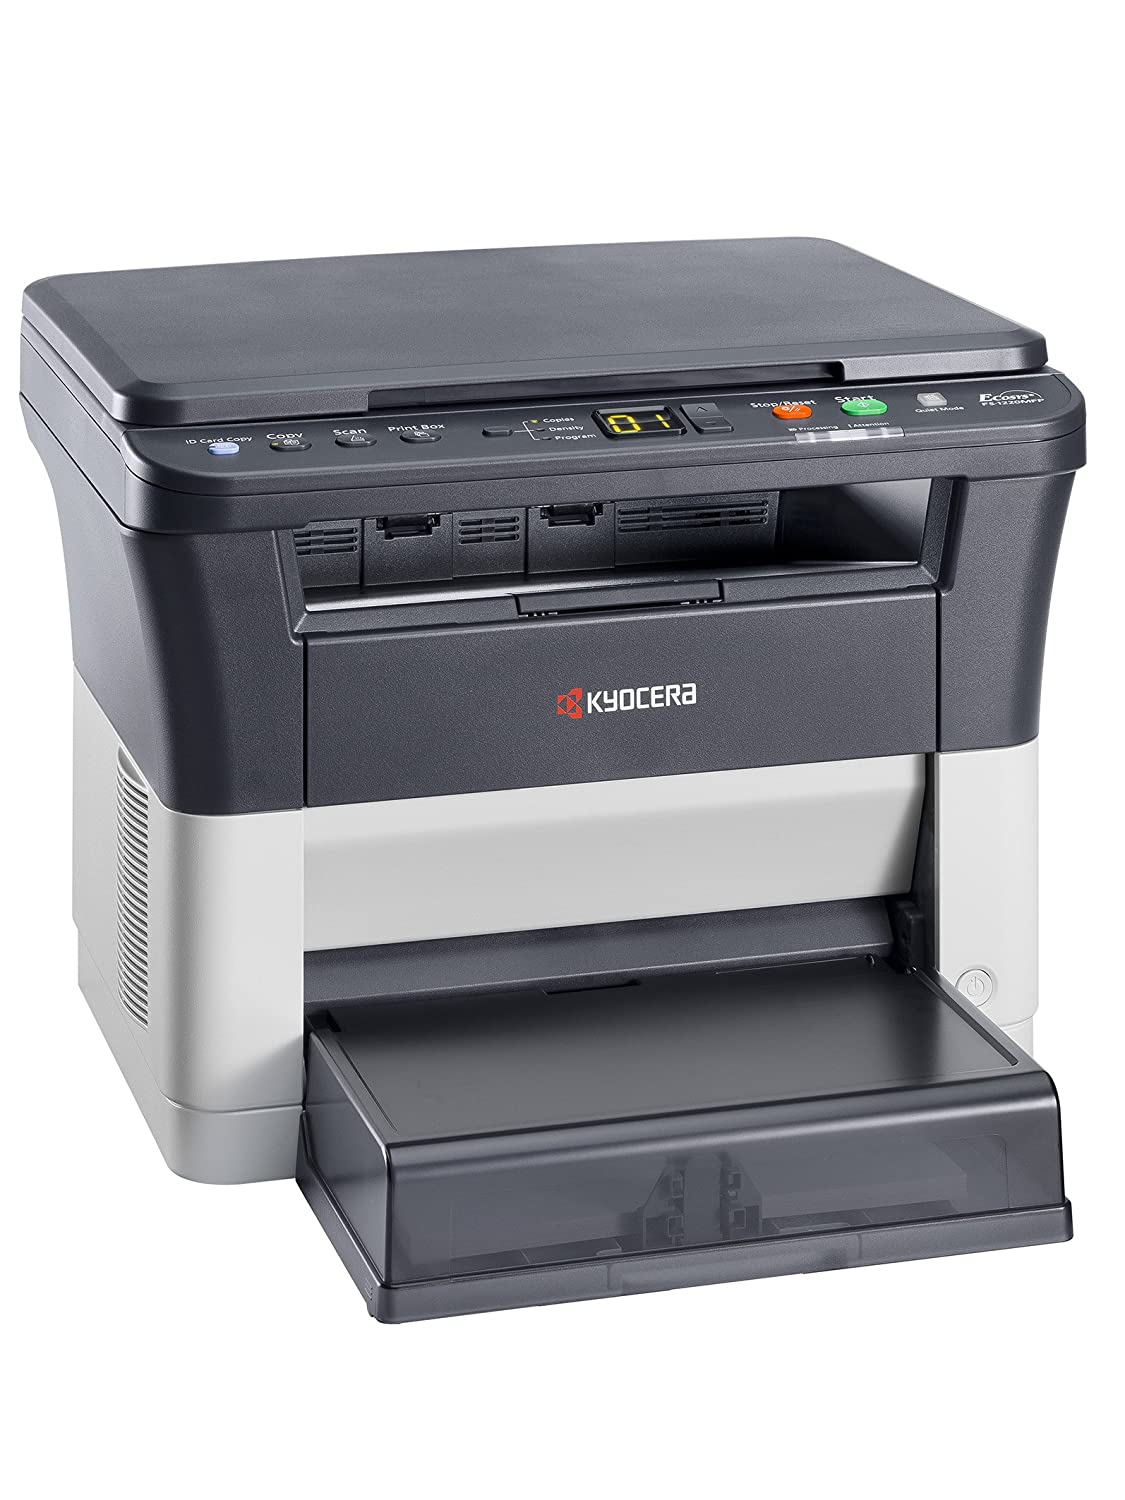 Kyocera Ecosys FS-1220MFP 3-in-1 Multifunction Laser Printer, B/W Print,  Copy & Scanner  Up to 20 Pages per Minute